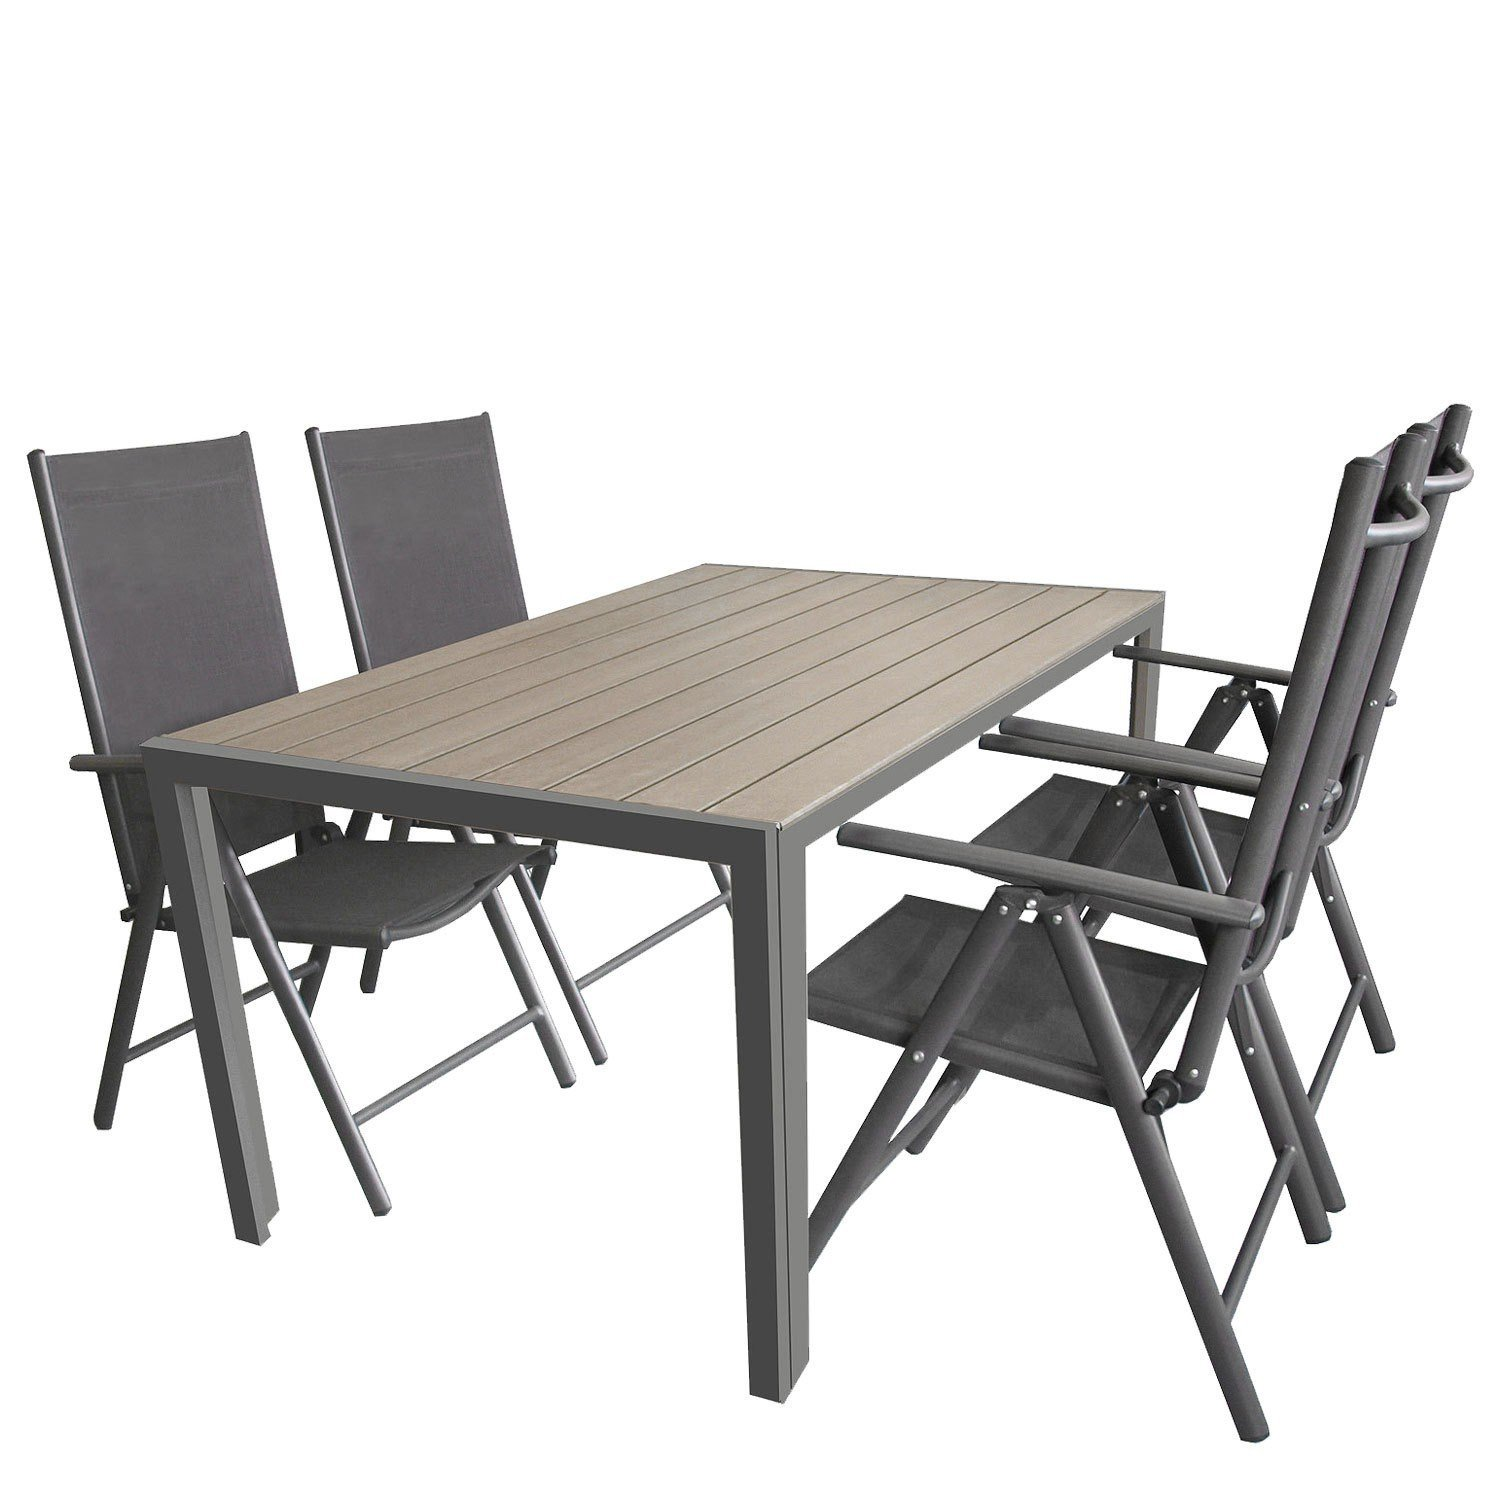 terrassenm bel gartenm bel set sitzgruppe sitzgarnitur aluminium polywood ausziehtisch 224. Black Bedroom Furniture Sets. Home Design Ideas